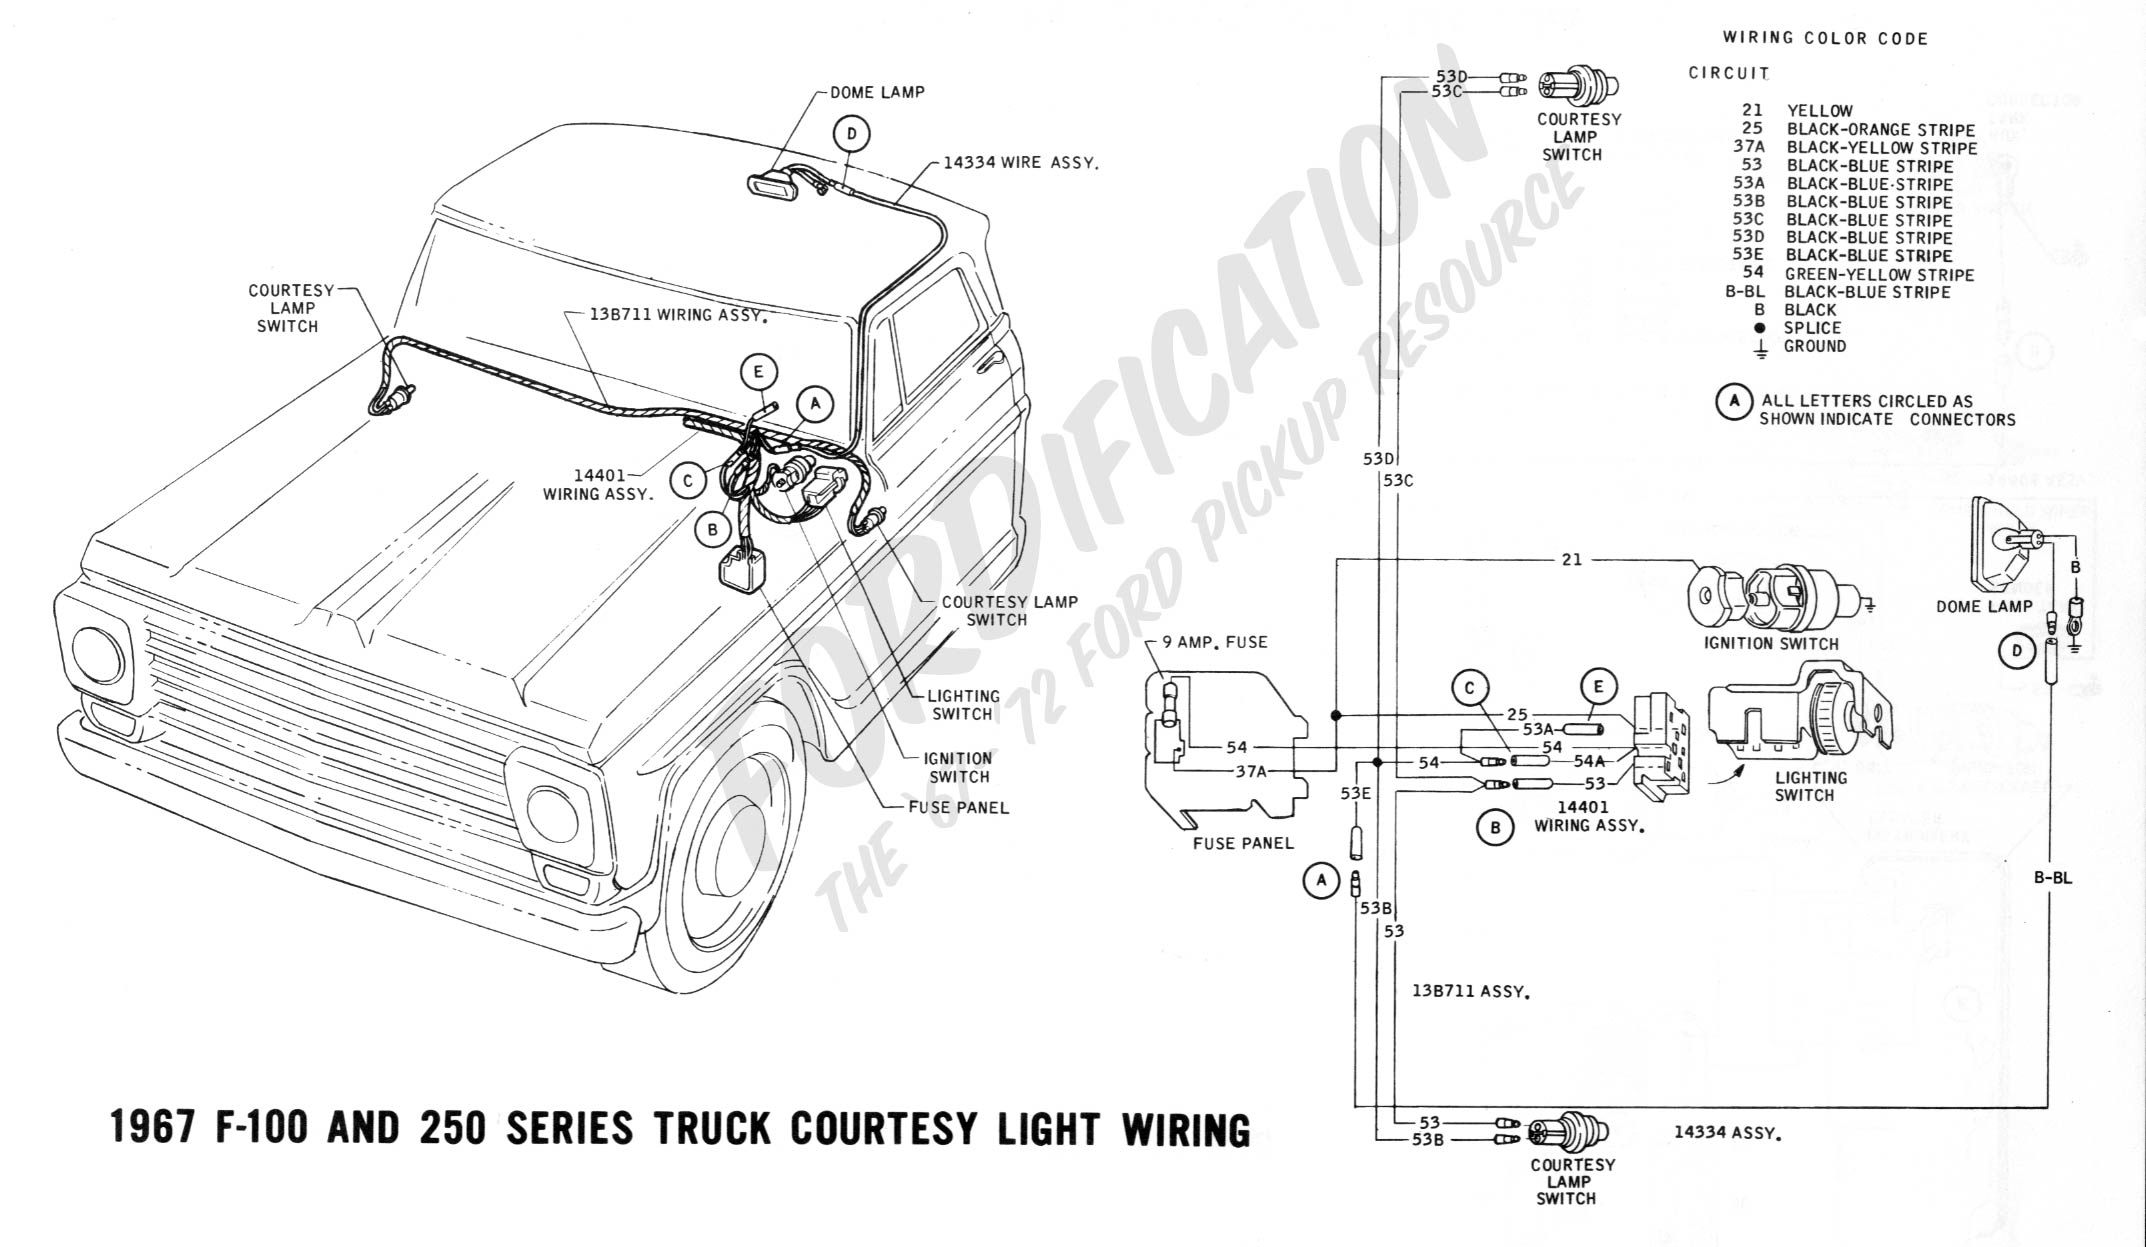 wiring 1967courtesylight ford truck technical drawings and schematics section h wiring 1977 Ford F100 Custom at readyjetset.co